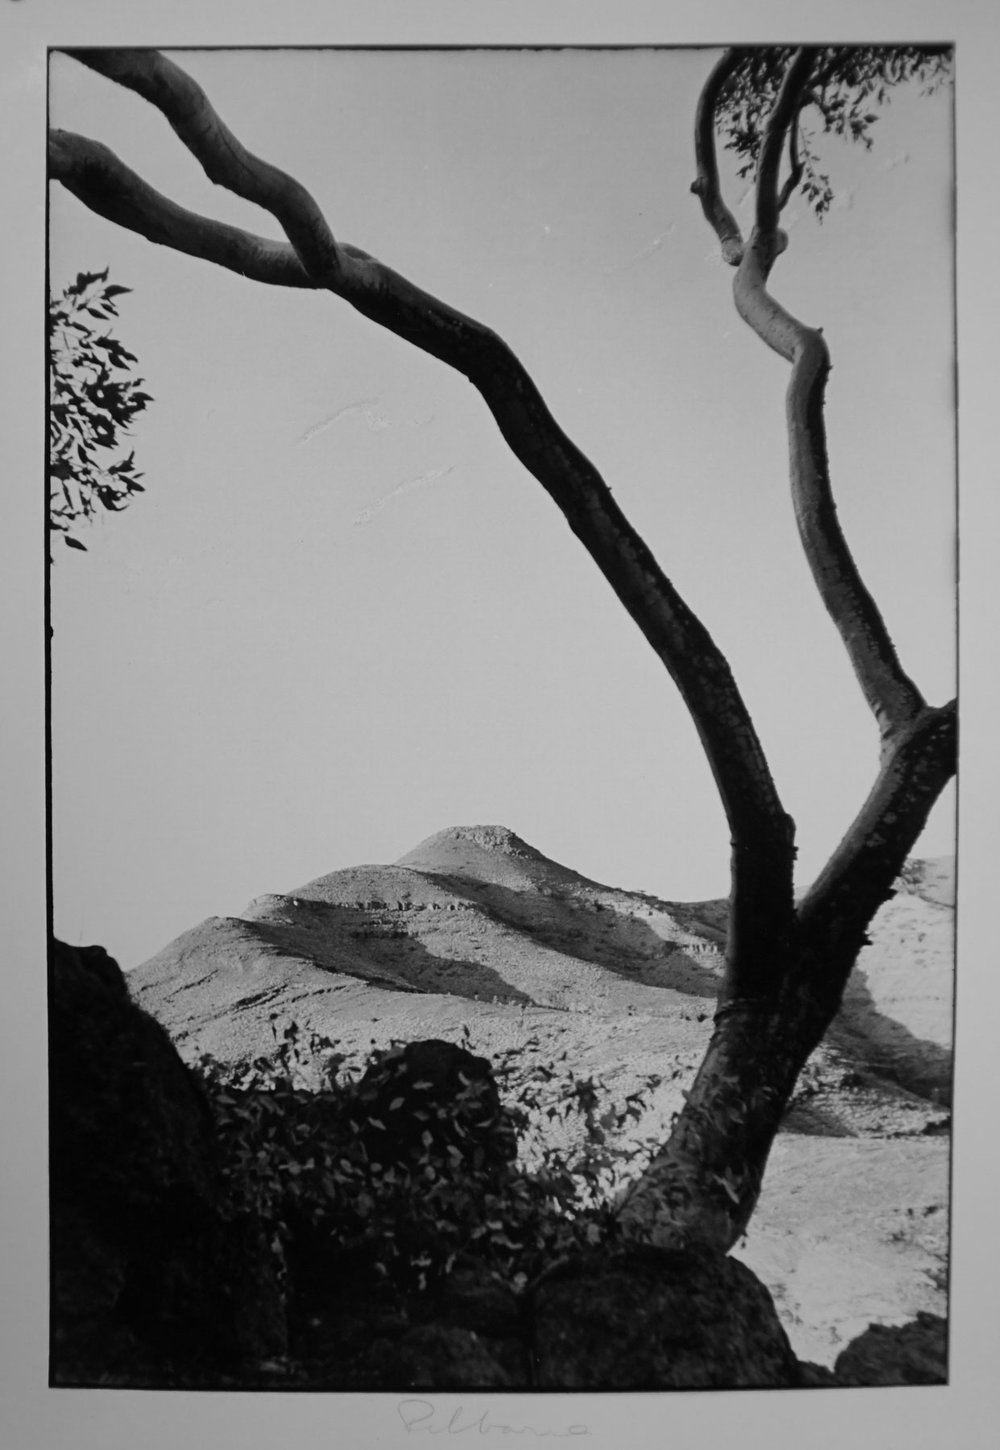 55. Richard Woldendorp, 'Hamersley Gorge with Snappy Gum, Pilbara WA', BW62, taken and printed in 1964, Vintage Print